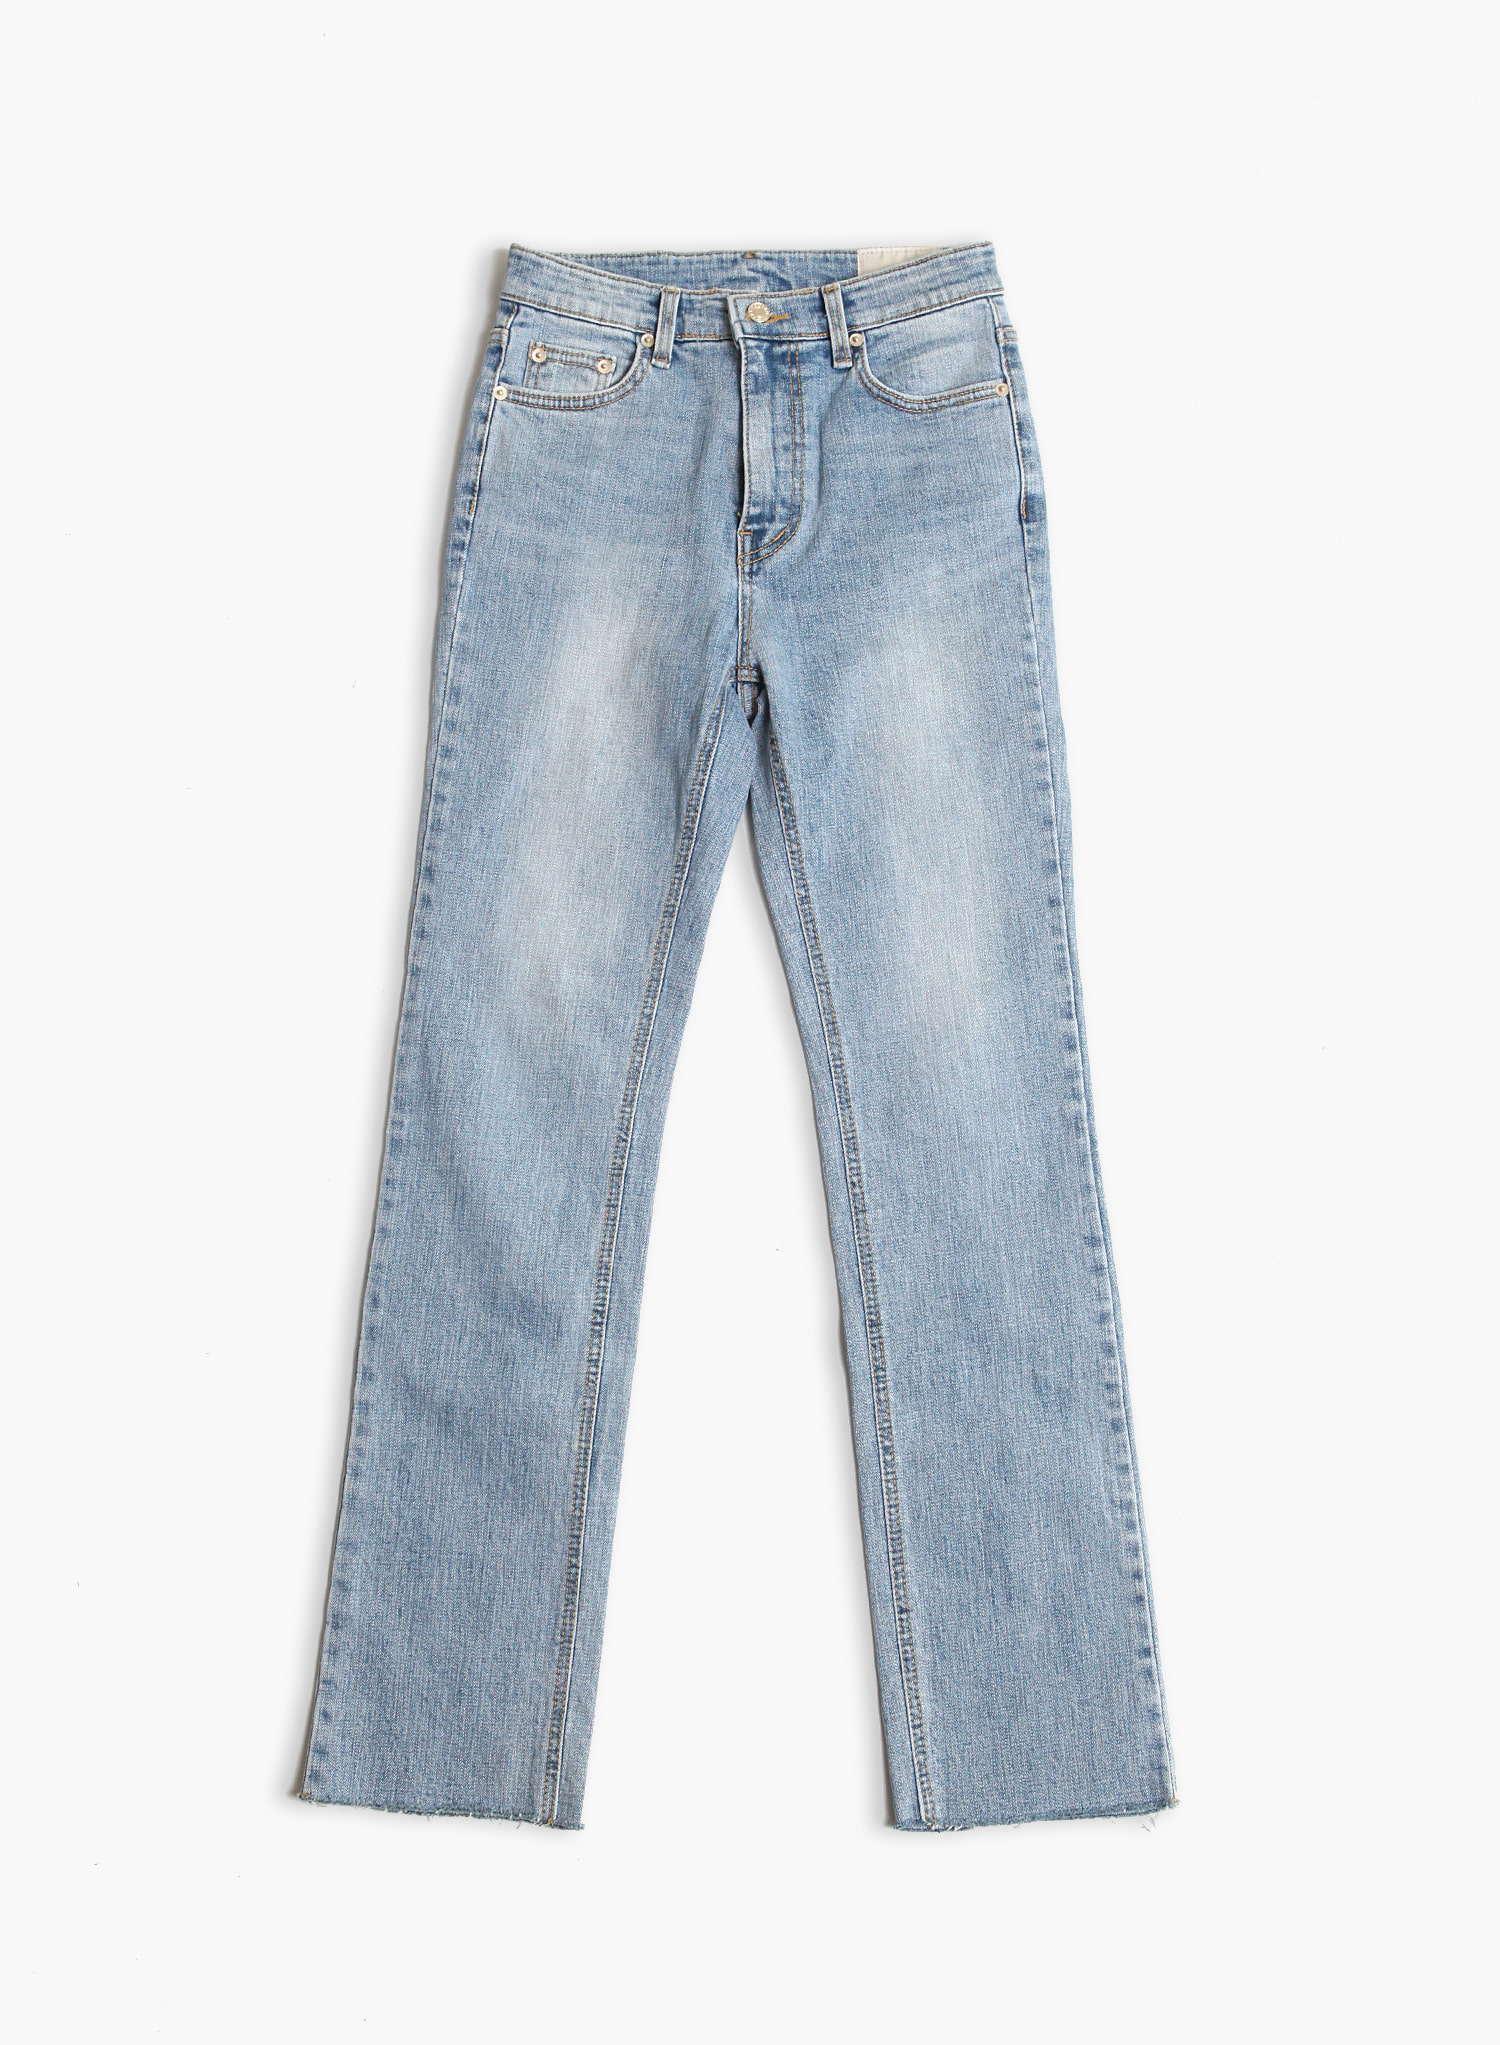 [SEASON OFF Event 40%↓] SLIM STRAIGHT CROP JEANS / LIGHT BLUE